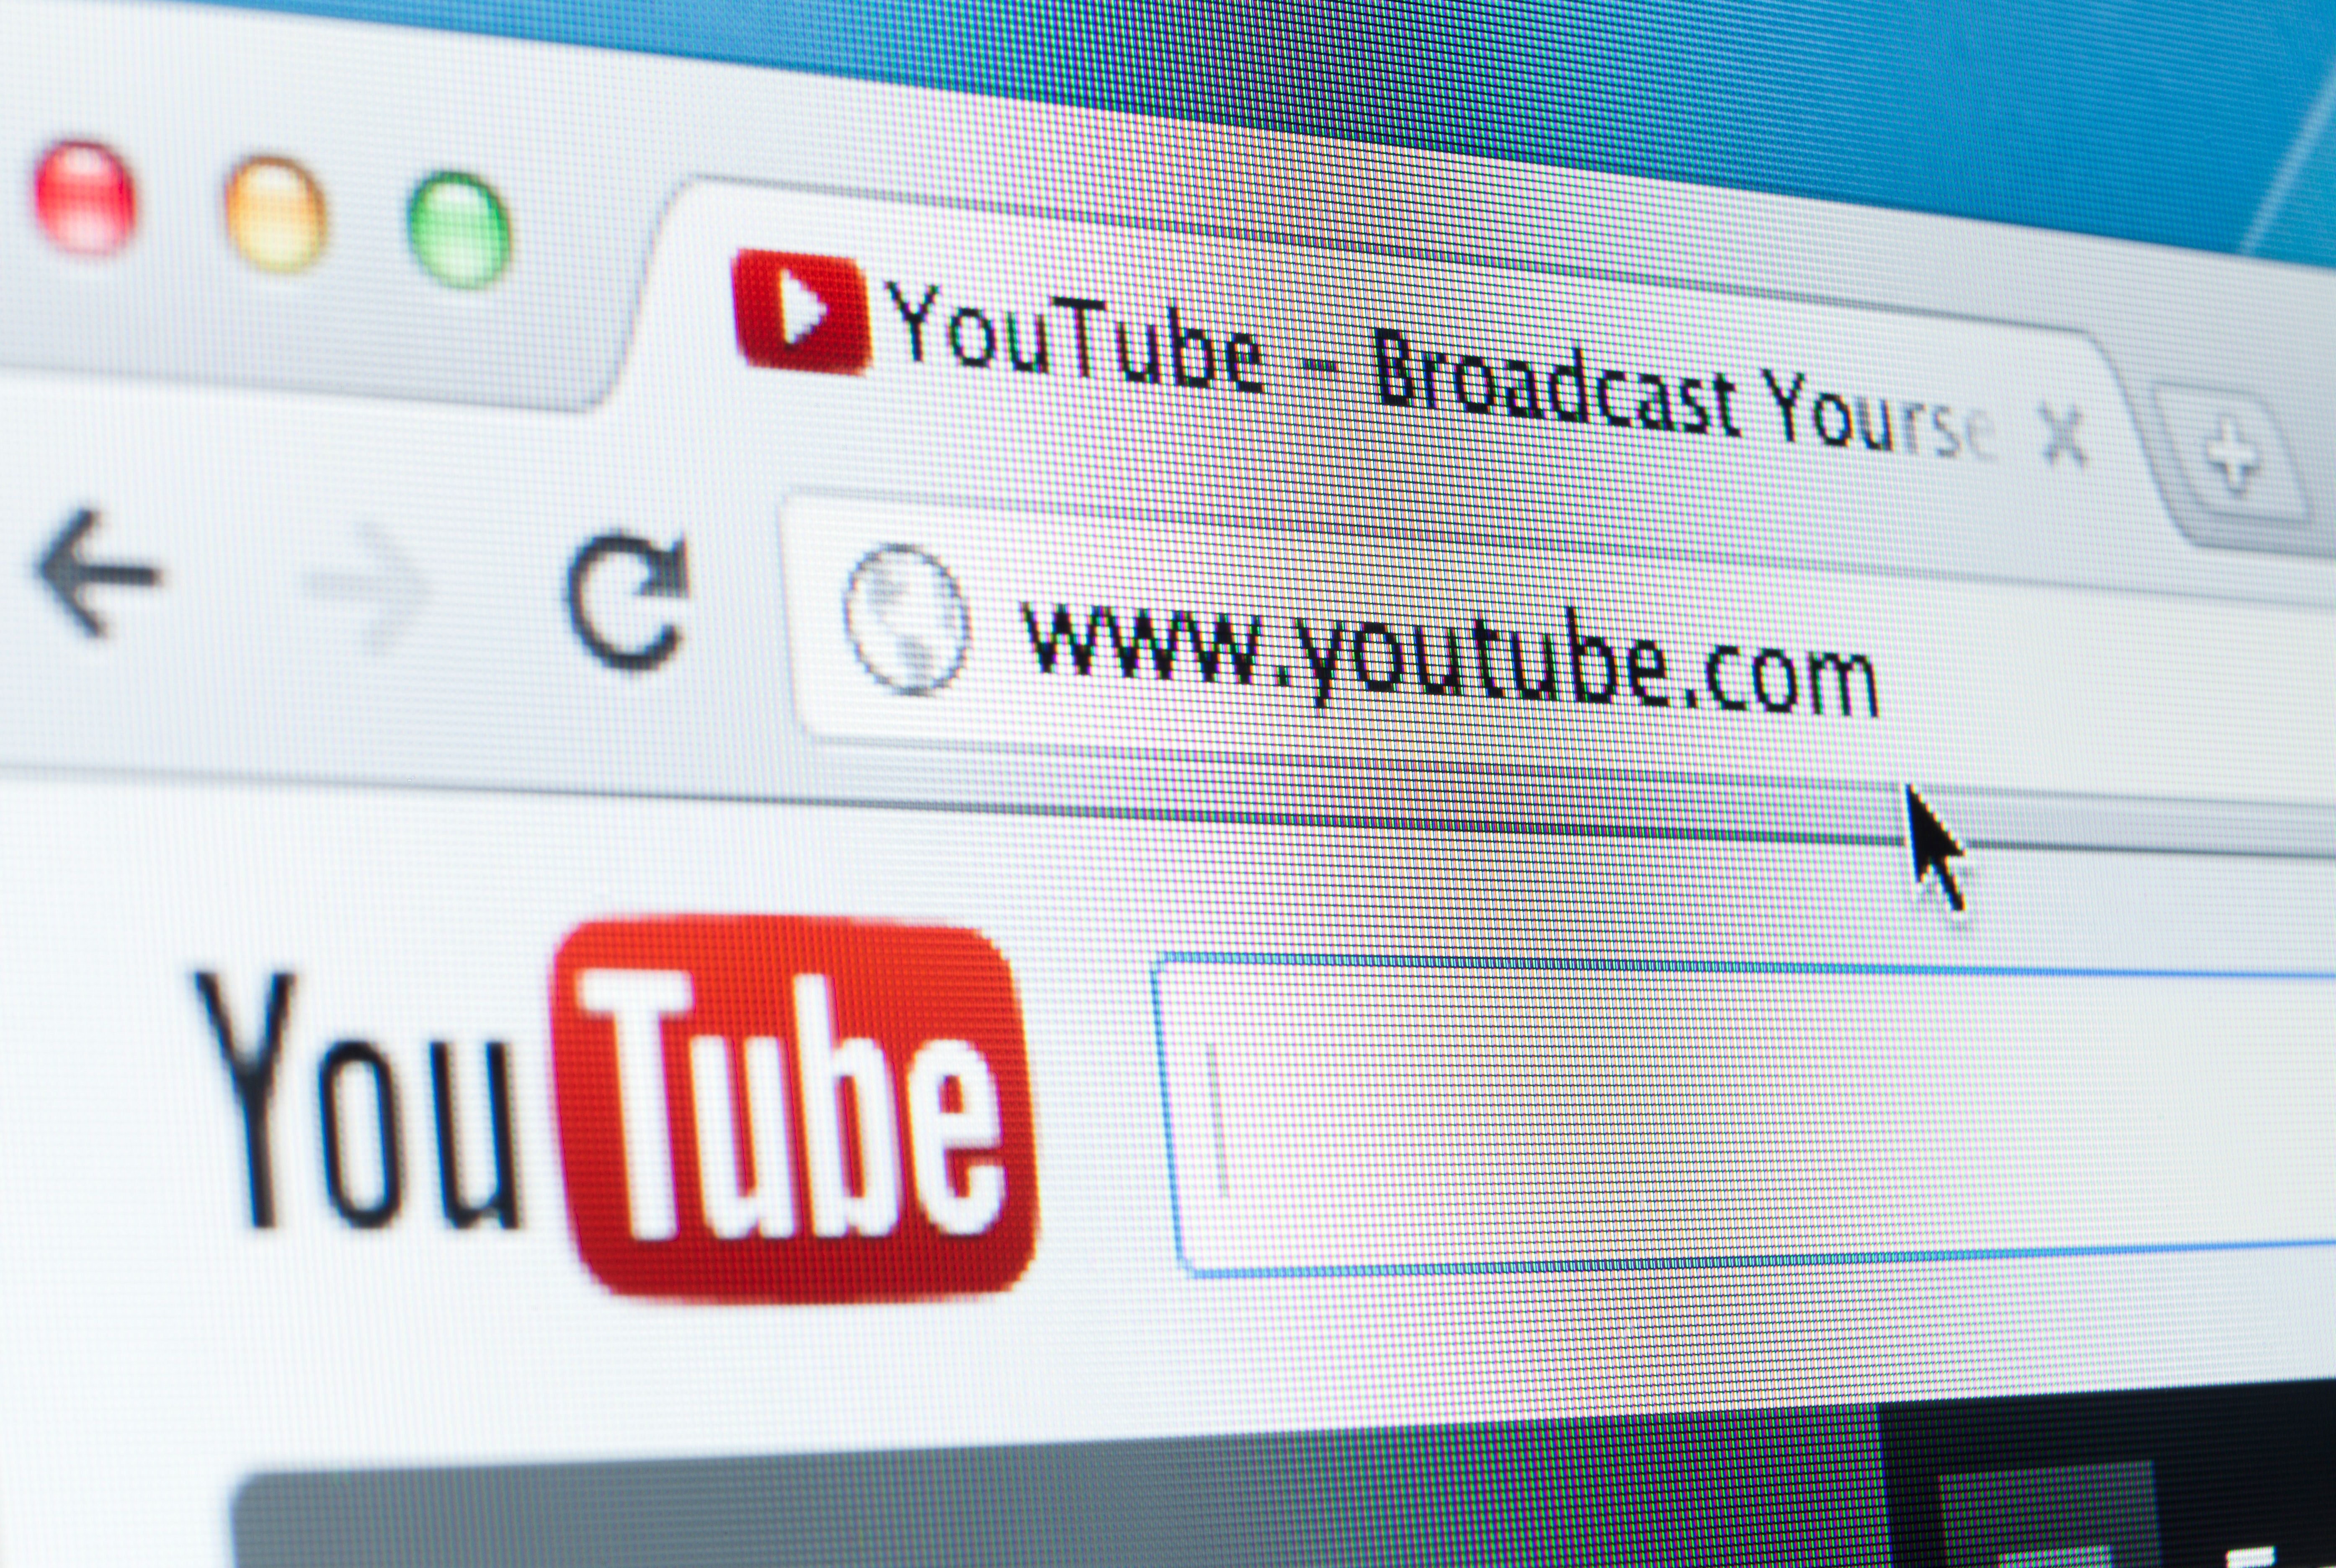 Man Praises YouTube's Crackdown On Conspiracy Videos He Once